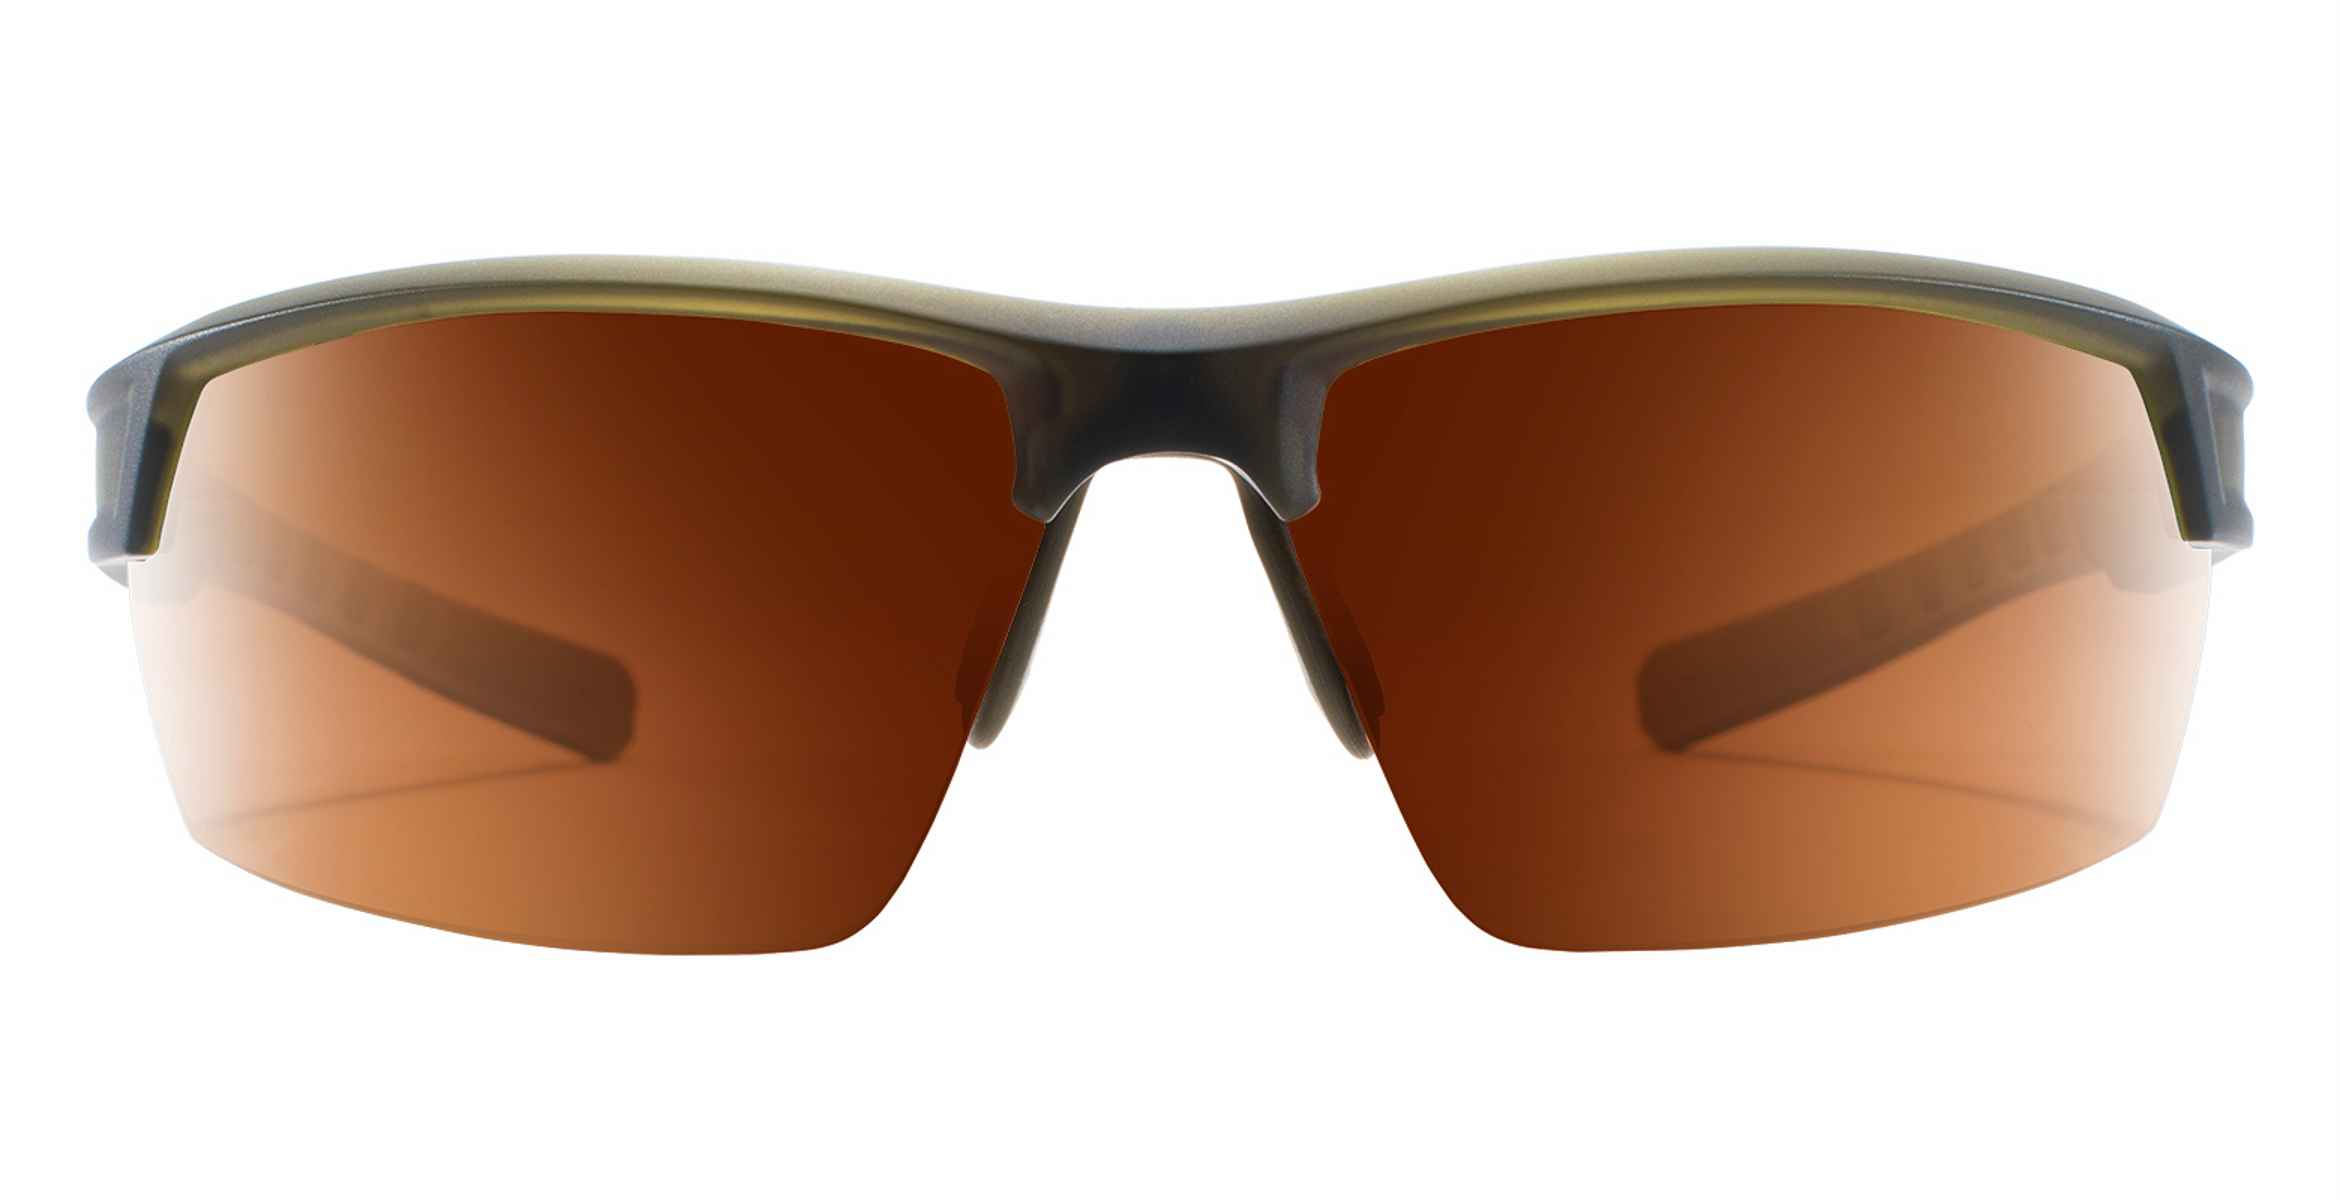 314289f2d7 Native Eyewear Sunglasses Catamount Matte Moss Pol N3 Brown +Sportflex -  189 356 524